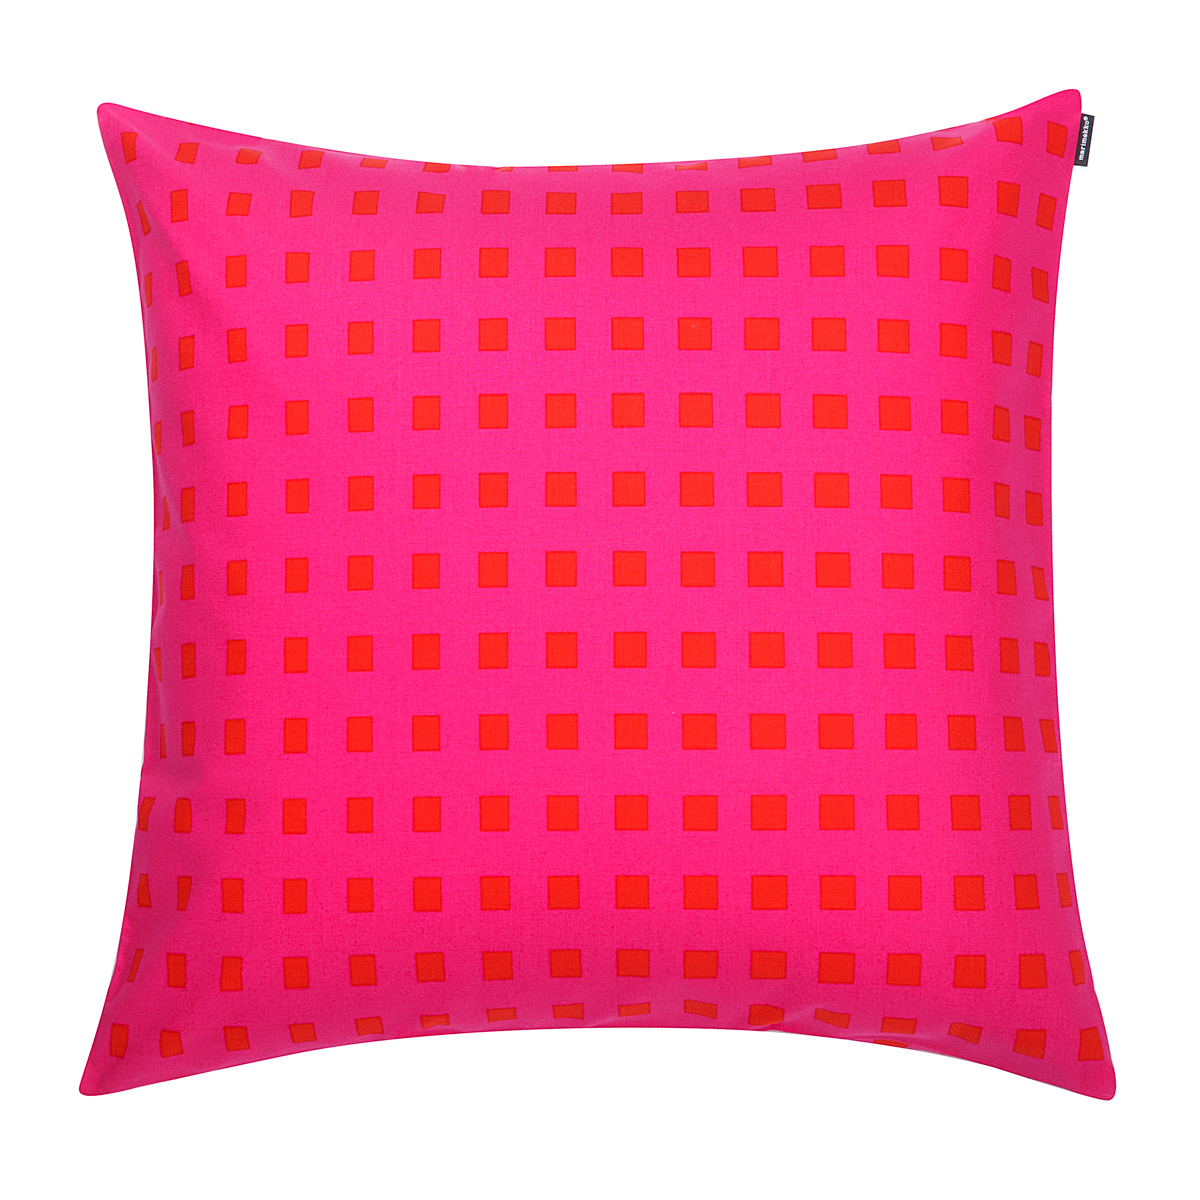 Red Throw Pillows For Bed : Marimekko Kullervo Pink / Red Throw Pillow - Marimekko Bed & Bath Sale